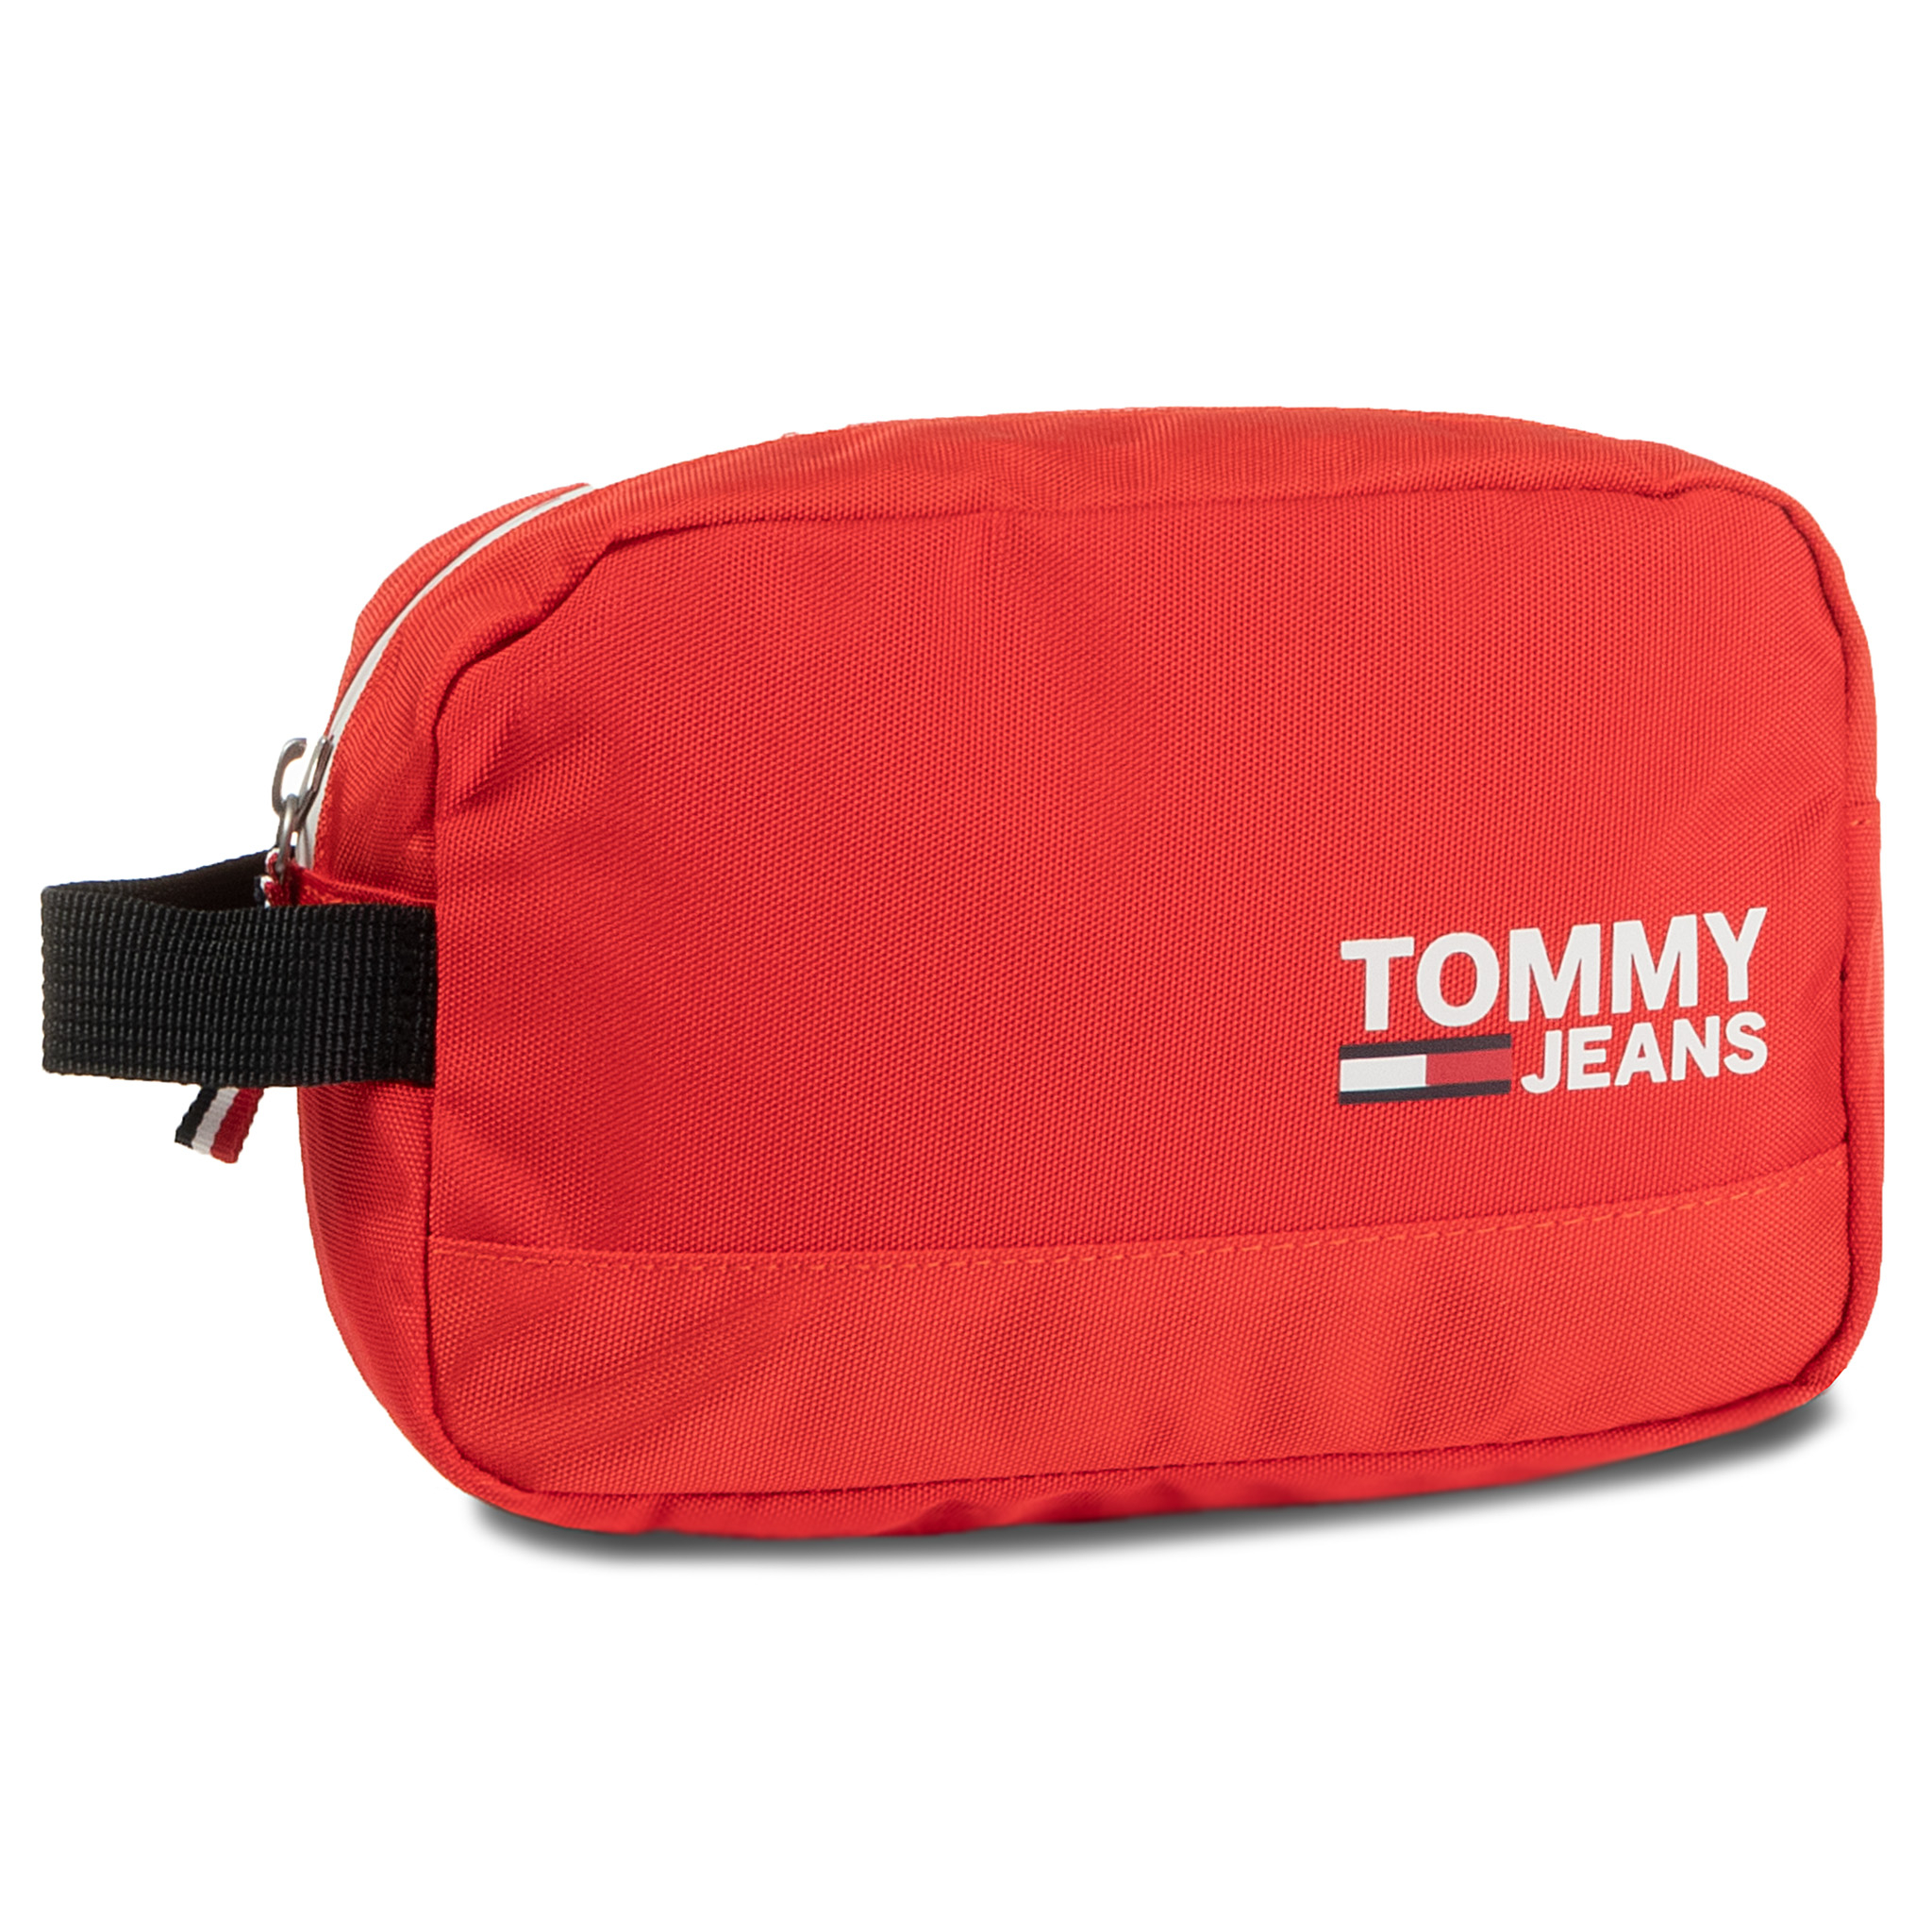 Geantă Pentru Cosmetice Tommy Jeans - Tjw Cool City Washbag Aw0aw07490 Xa8 imagine epantofi.ro 2021